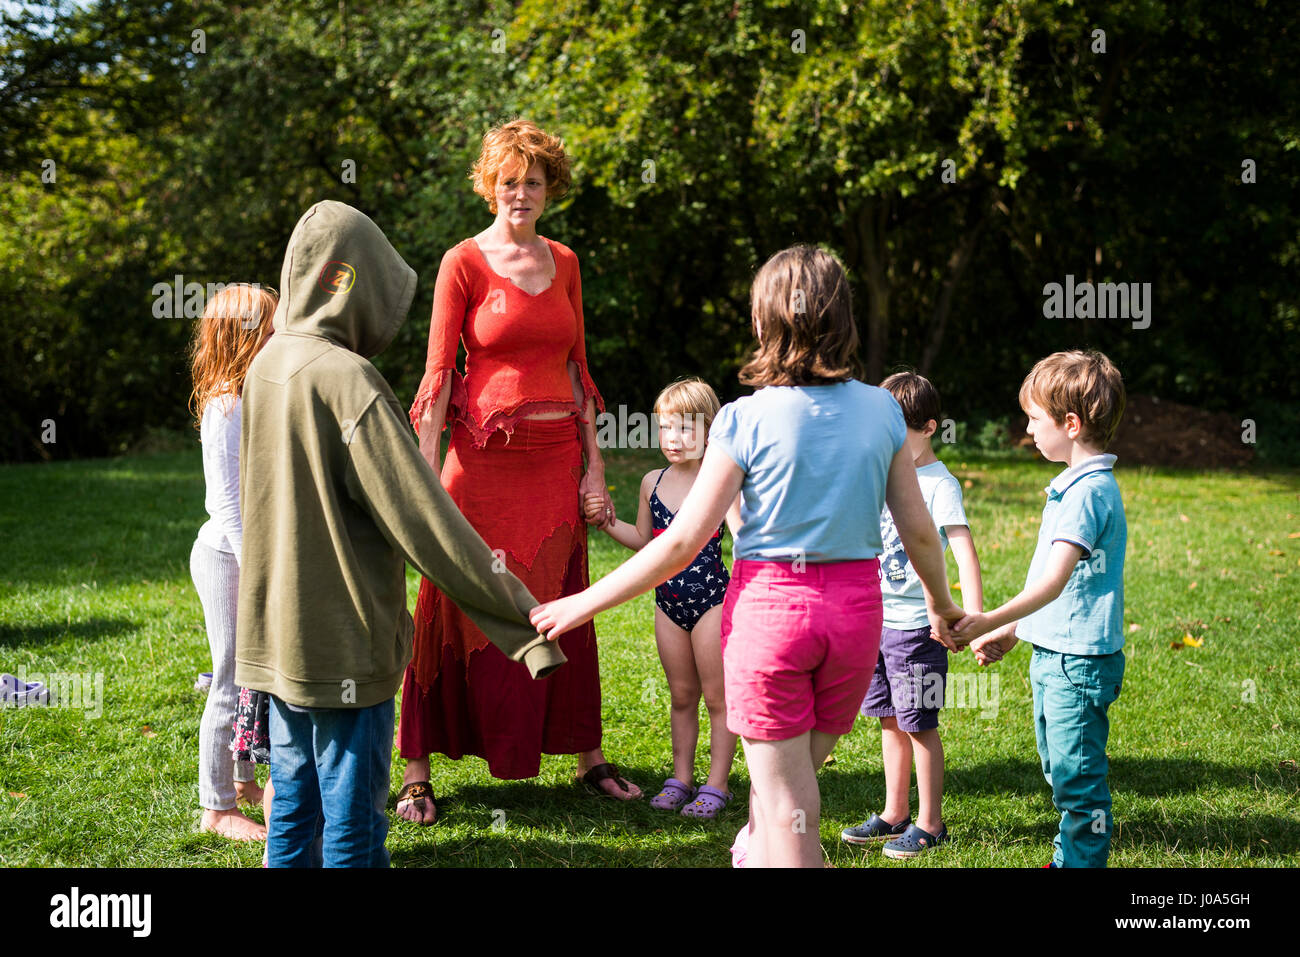 Woman leading a drama workshop for children at a summer festival - Stock Image